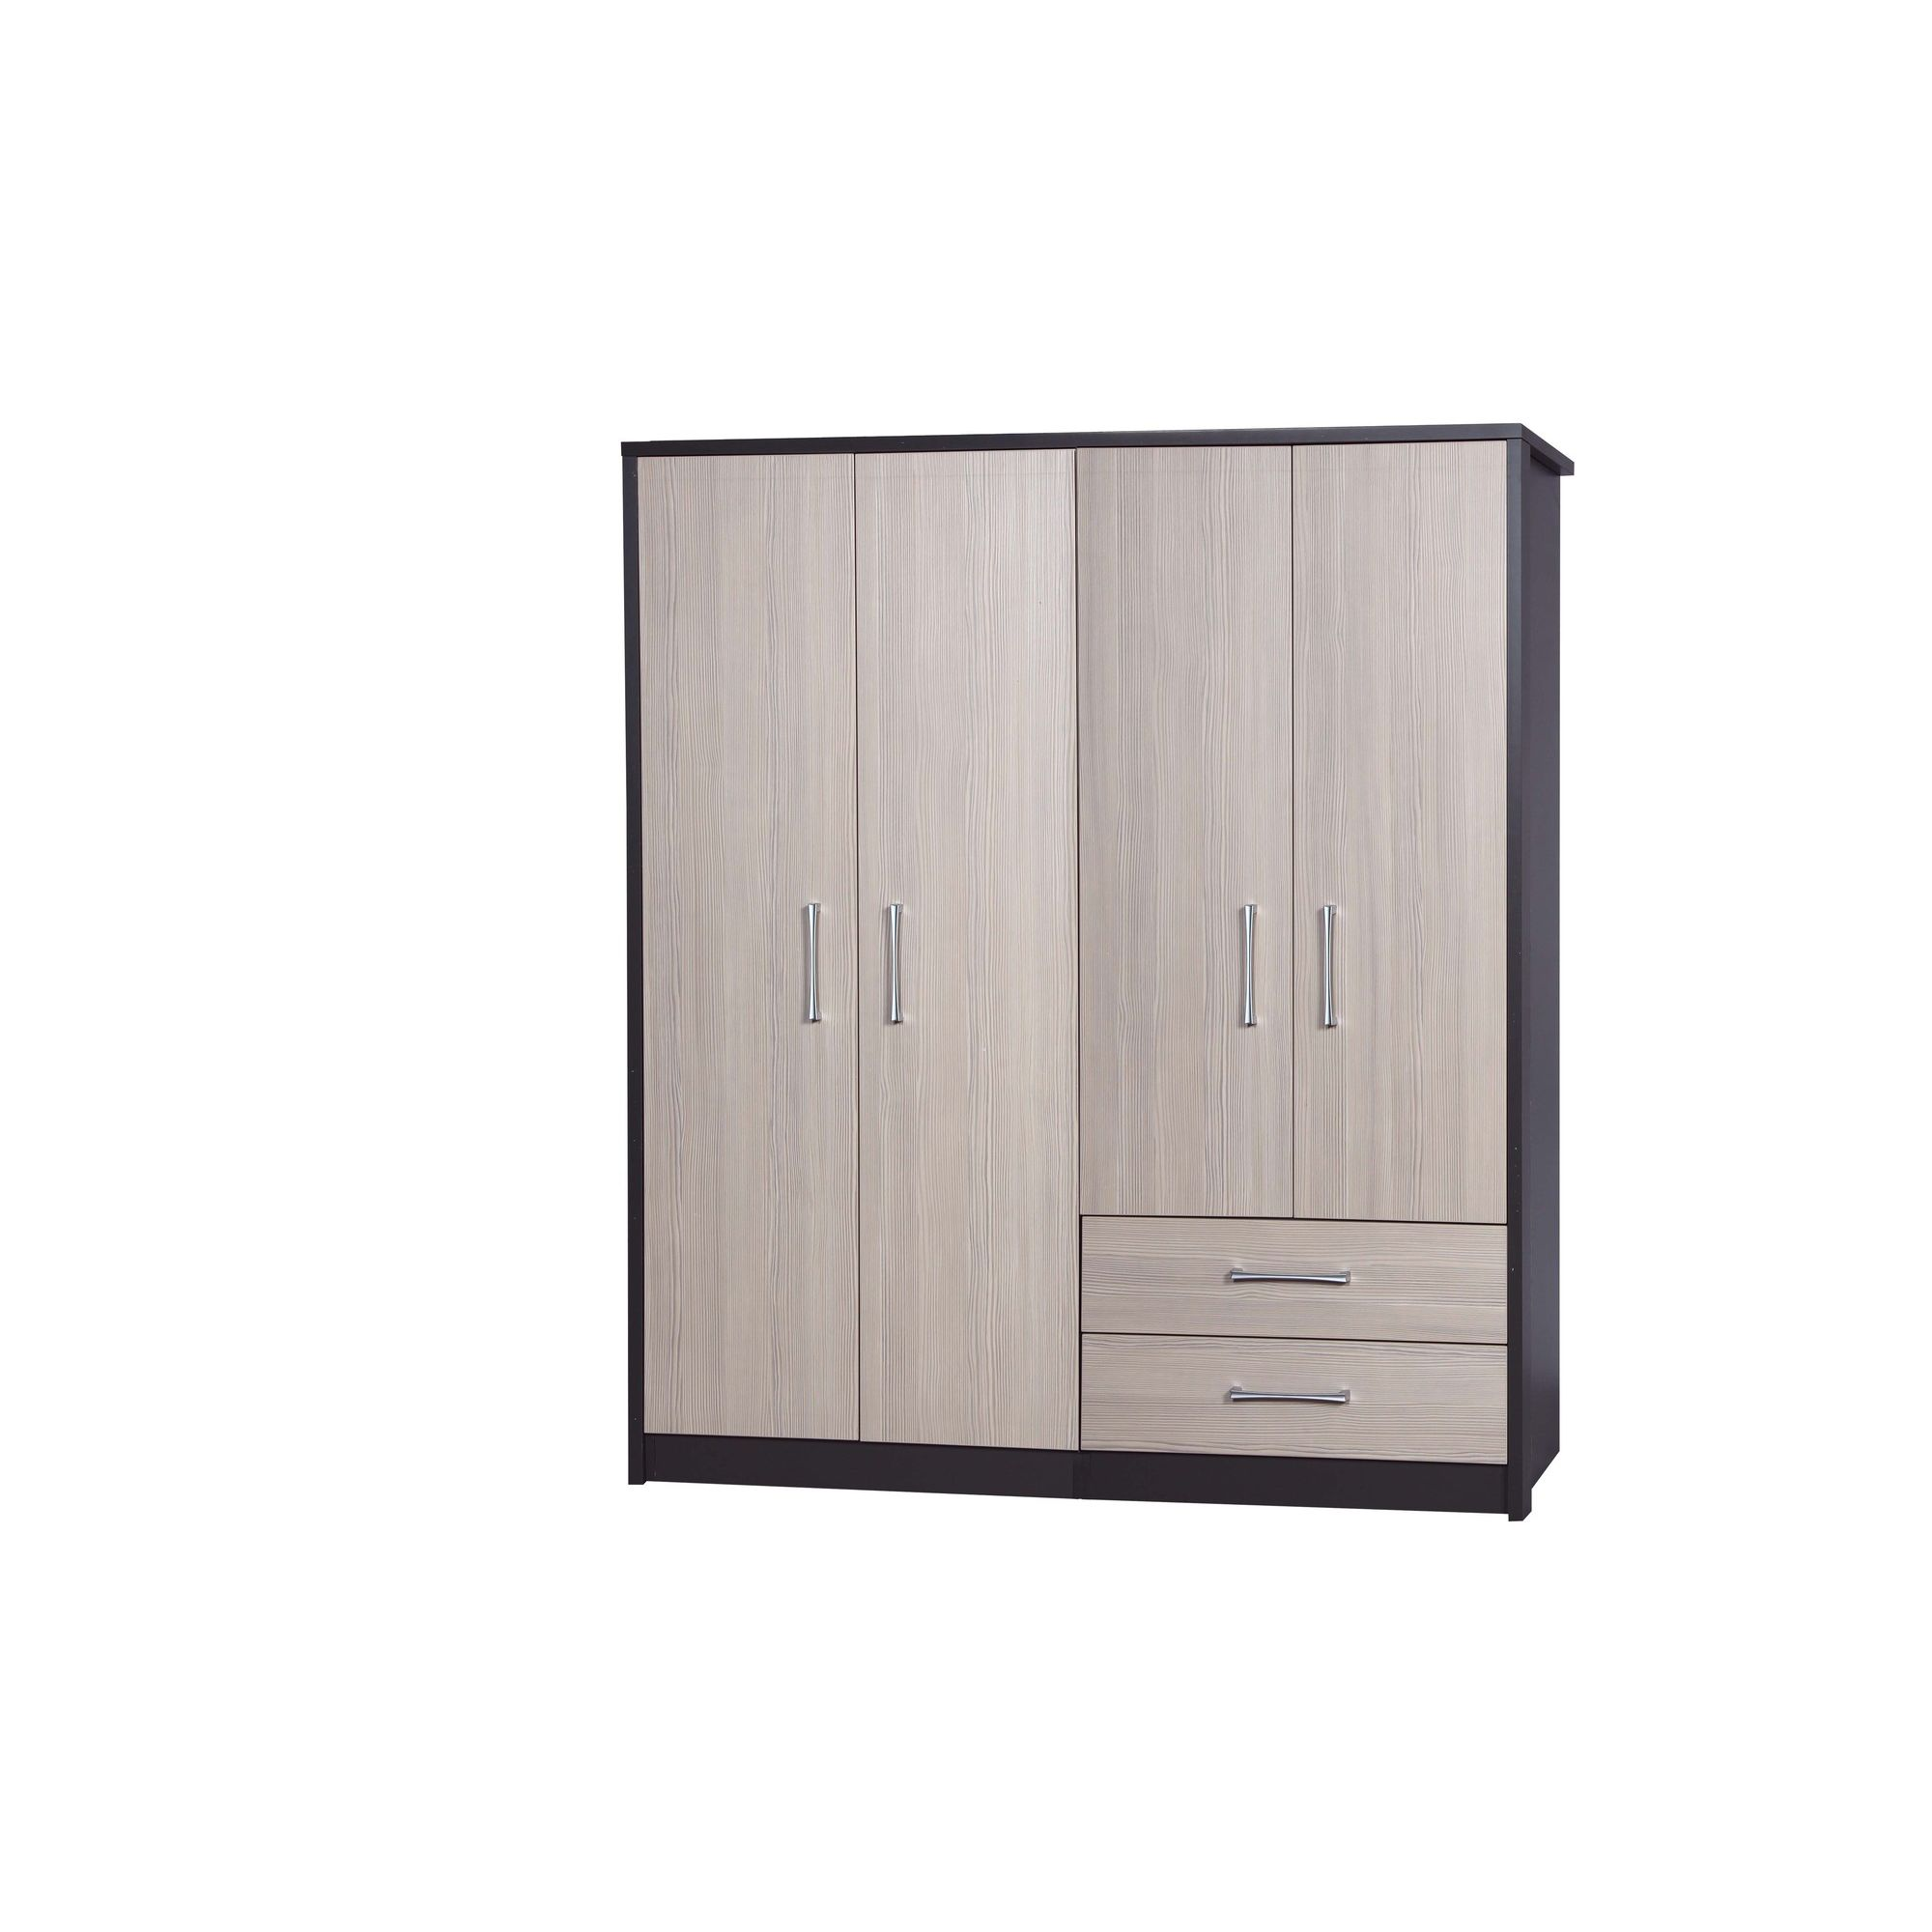 Alto Furniture Avola 4 Door Combi and Regular Wardrobe - Grey Carcass With White Avola at Tesco Direct